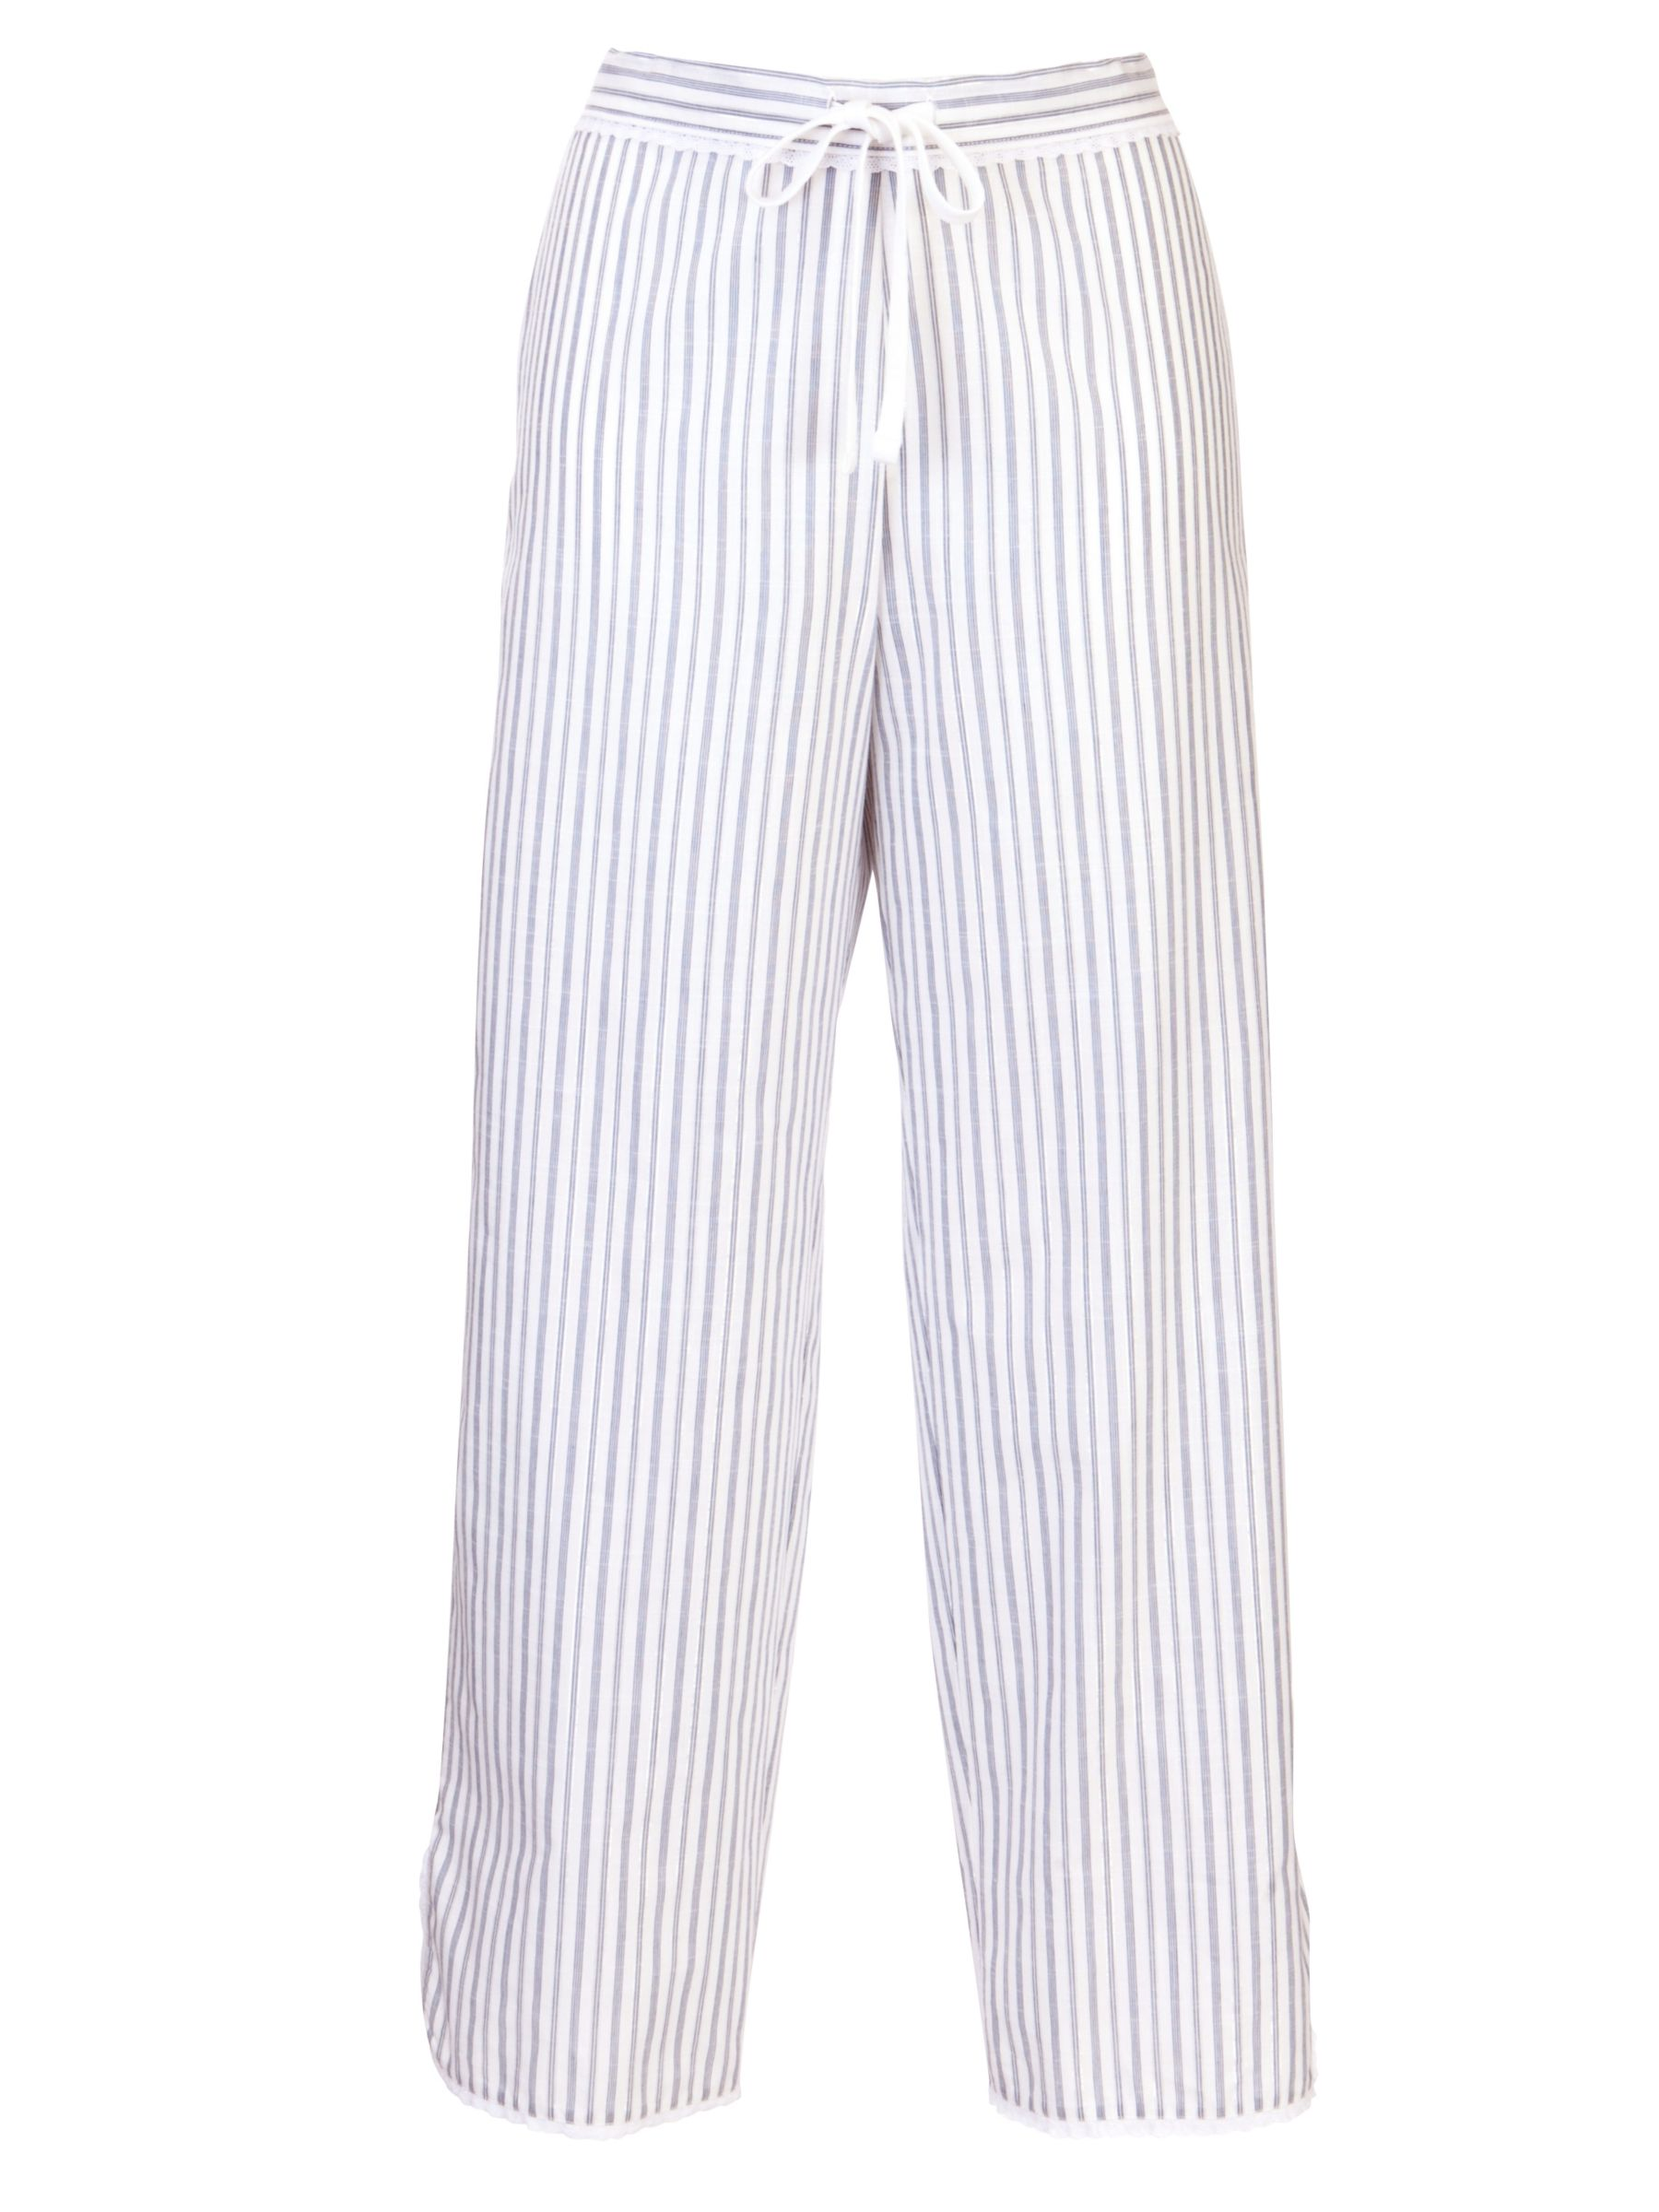 Cyberjammies China Blue Stripe Pyjama Bottoms, Blue/White